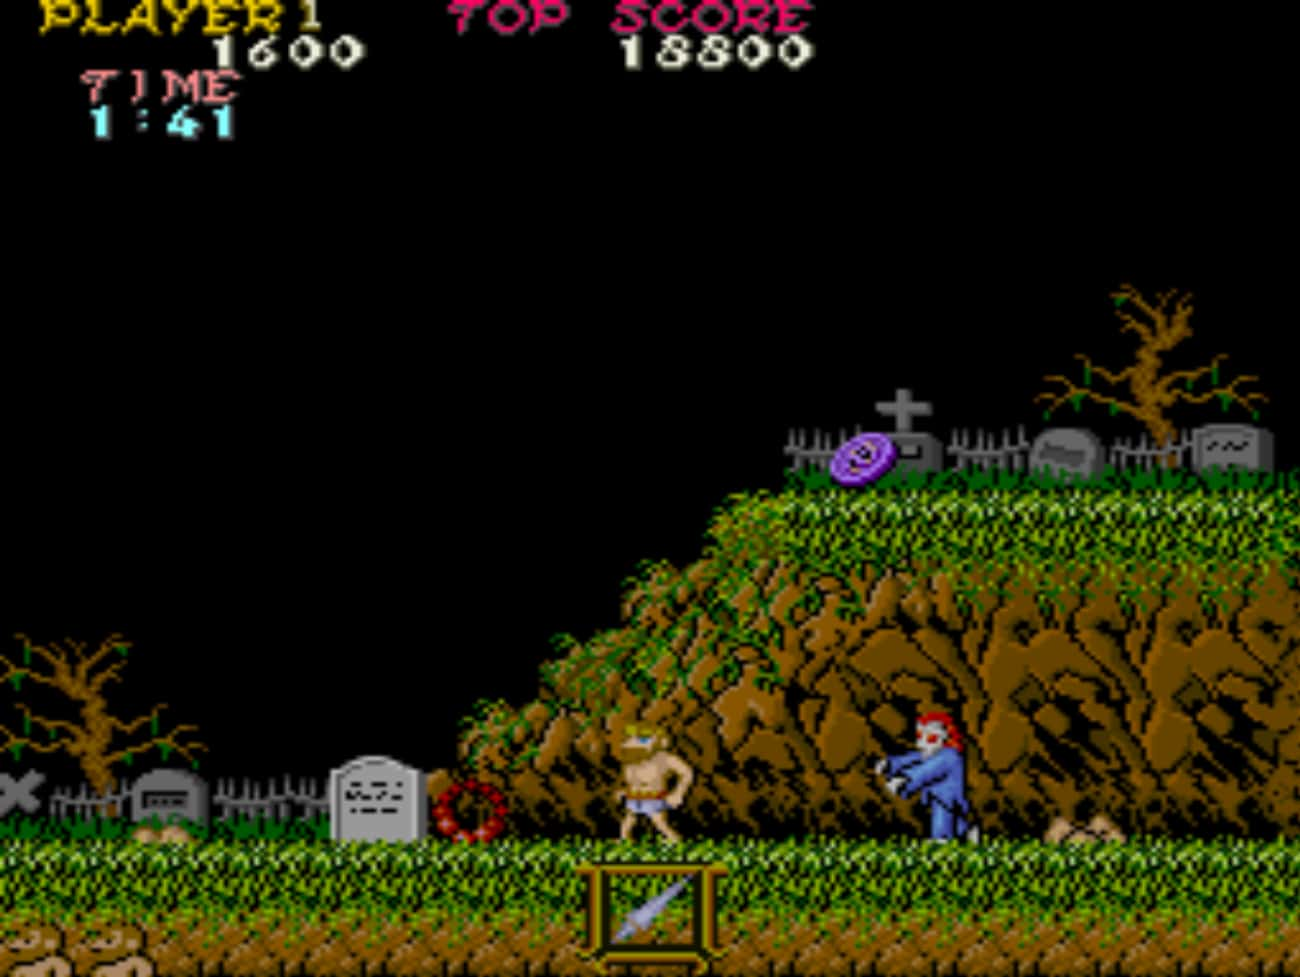 Ghosts'n Goblins is listed (or ranked) 4 on the list 20 Classic NES Games That Are So Mind-Numbingly Difficult They're Practically Unbeatable